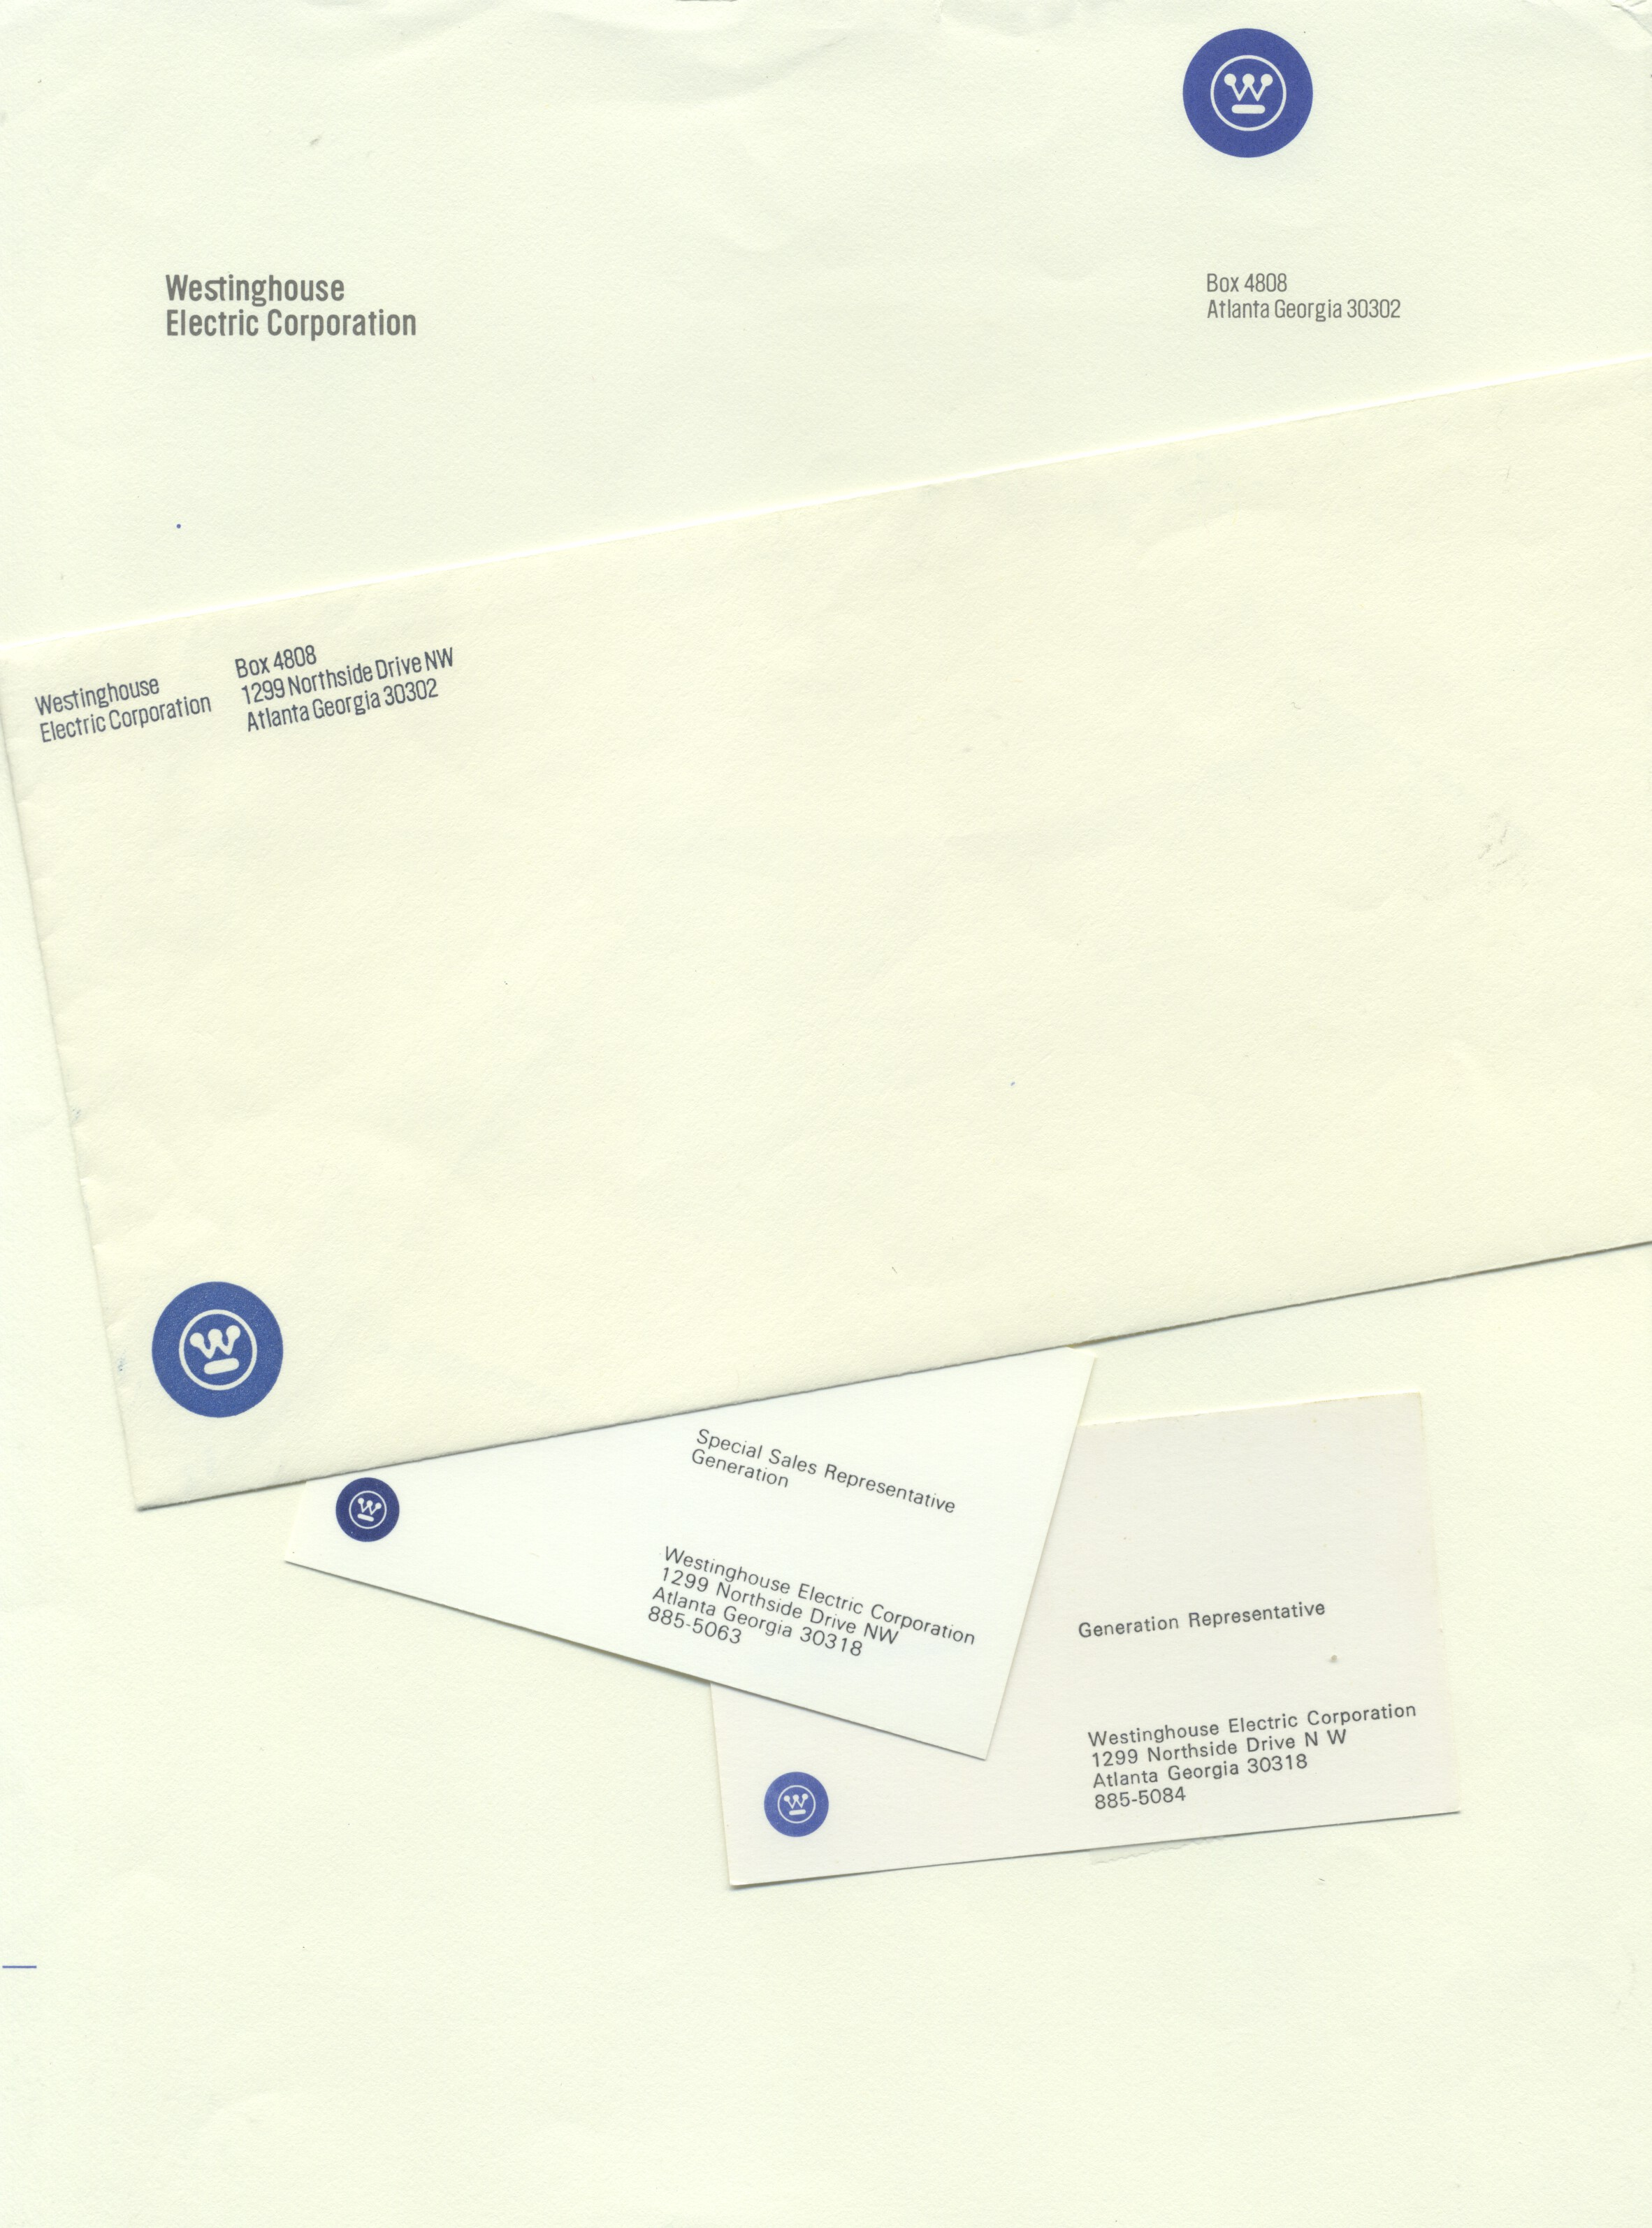 Westinghouse stationery and my dad's business cards